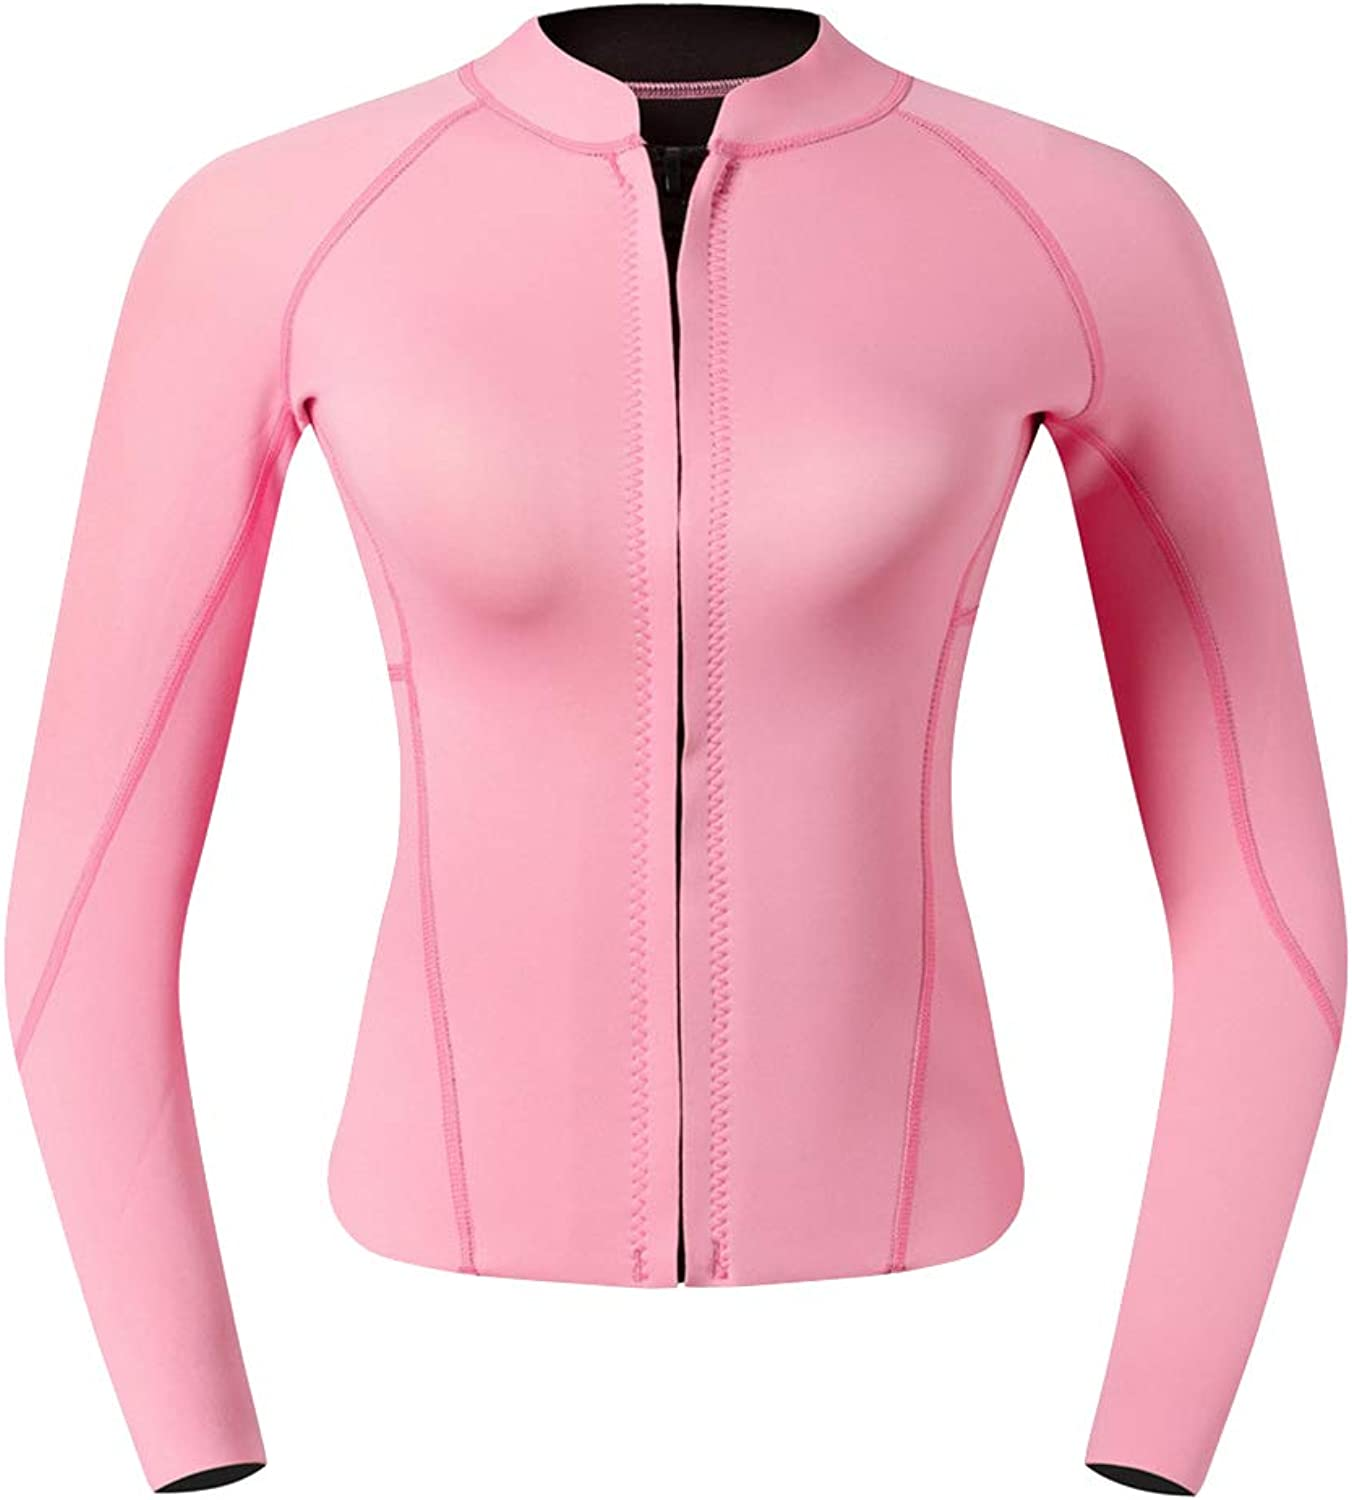 Baoblaze 2mm Womens Neoprene Wetsuit Top Jackets Perfect for Snorkeling, Scuba Diving, Surfing, Swimming – Pink